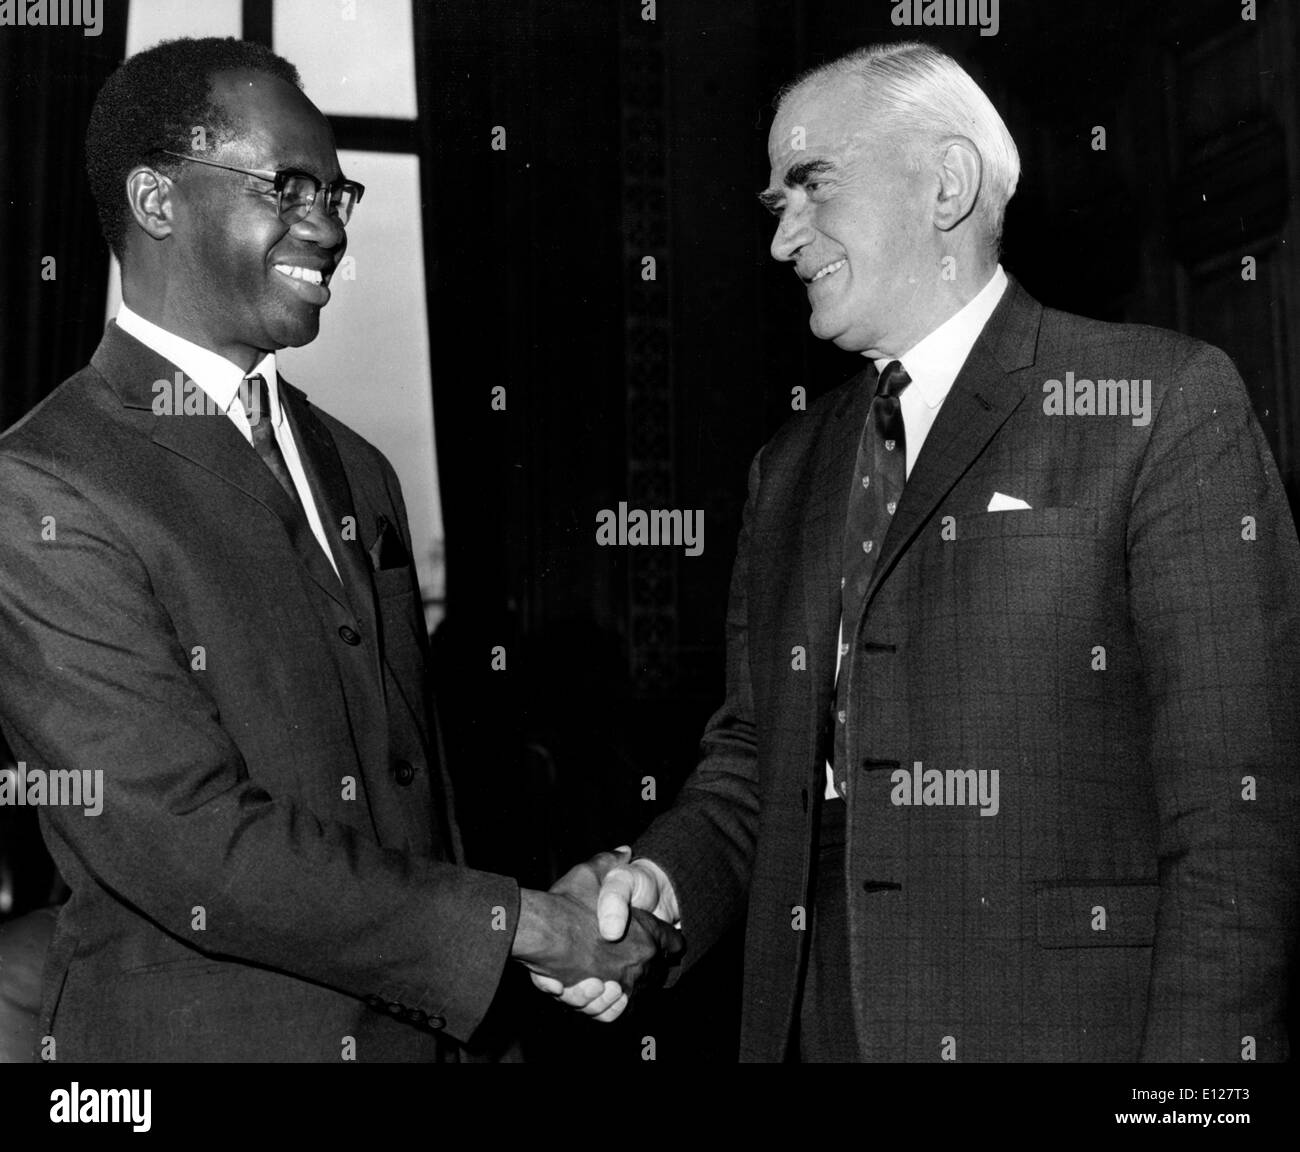 Apr 01, 2009 - London, England, United Kingdom - KOFI ABREFA BUSIA (11 July 1913 Ð 28 August 1978) was Prime Minister of Ghana from 1969Ð72. He was born in Wenchi, in the then British colony of Gold Coast (now called Ghana). He was educated at Methodist School, Wenchi, Mfantsipim School, Cape Coast, then at Wesley College, Kumasi from 1931Ð32. He later became a teacher at Achimota Secondary School. (Credit Image: KEYSTONE Pictures USA/ZUMAPRESS.com) - Stock Image